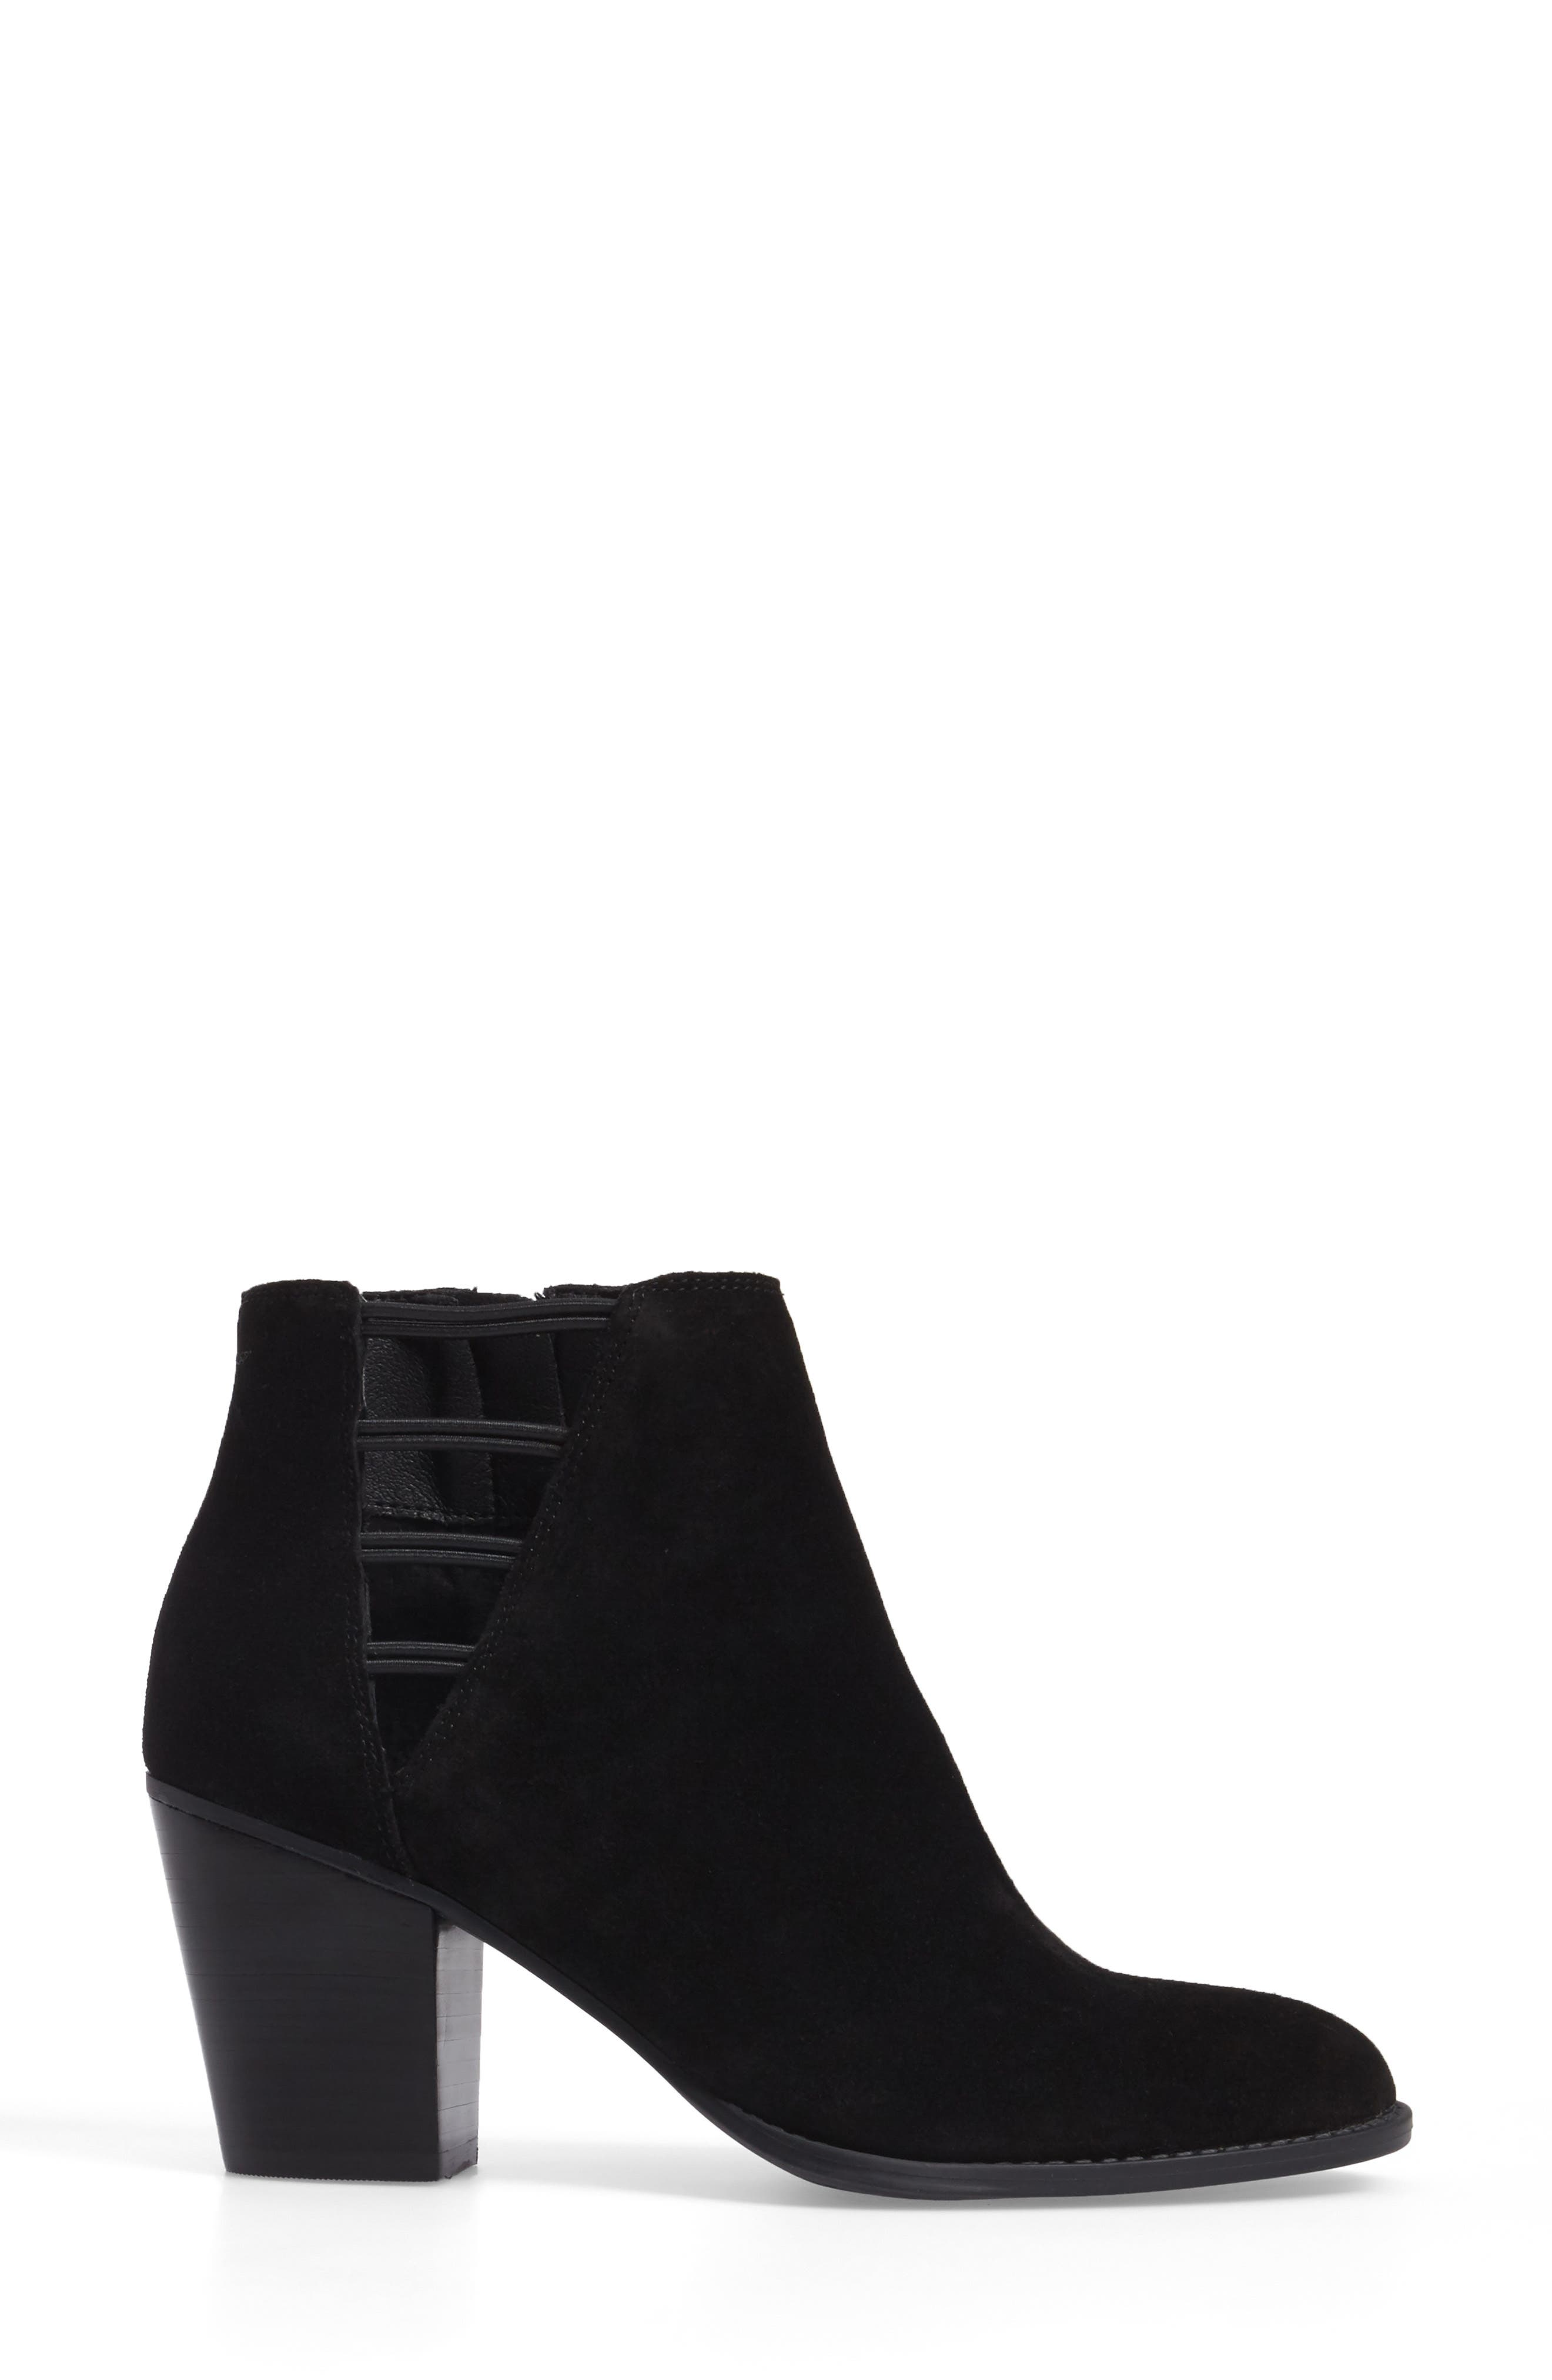 Yasma Bootie,                             Alternate thumbnail 3, color,                             Black Suede